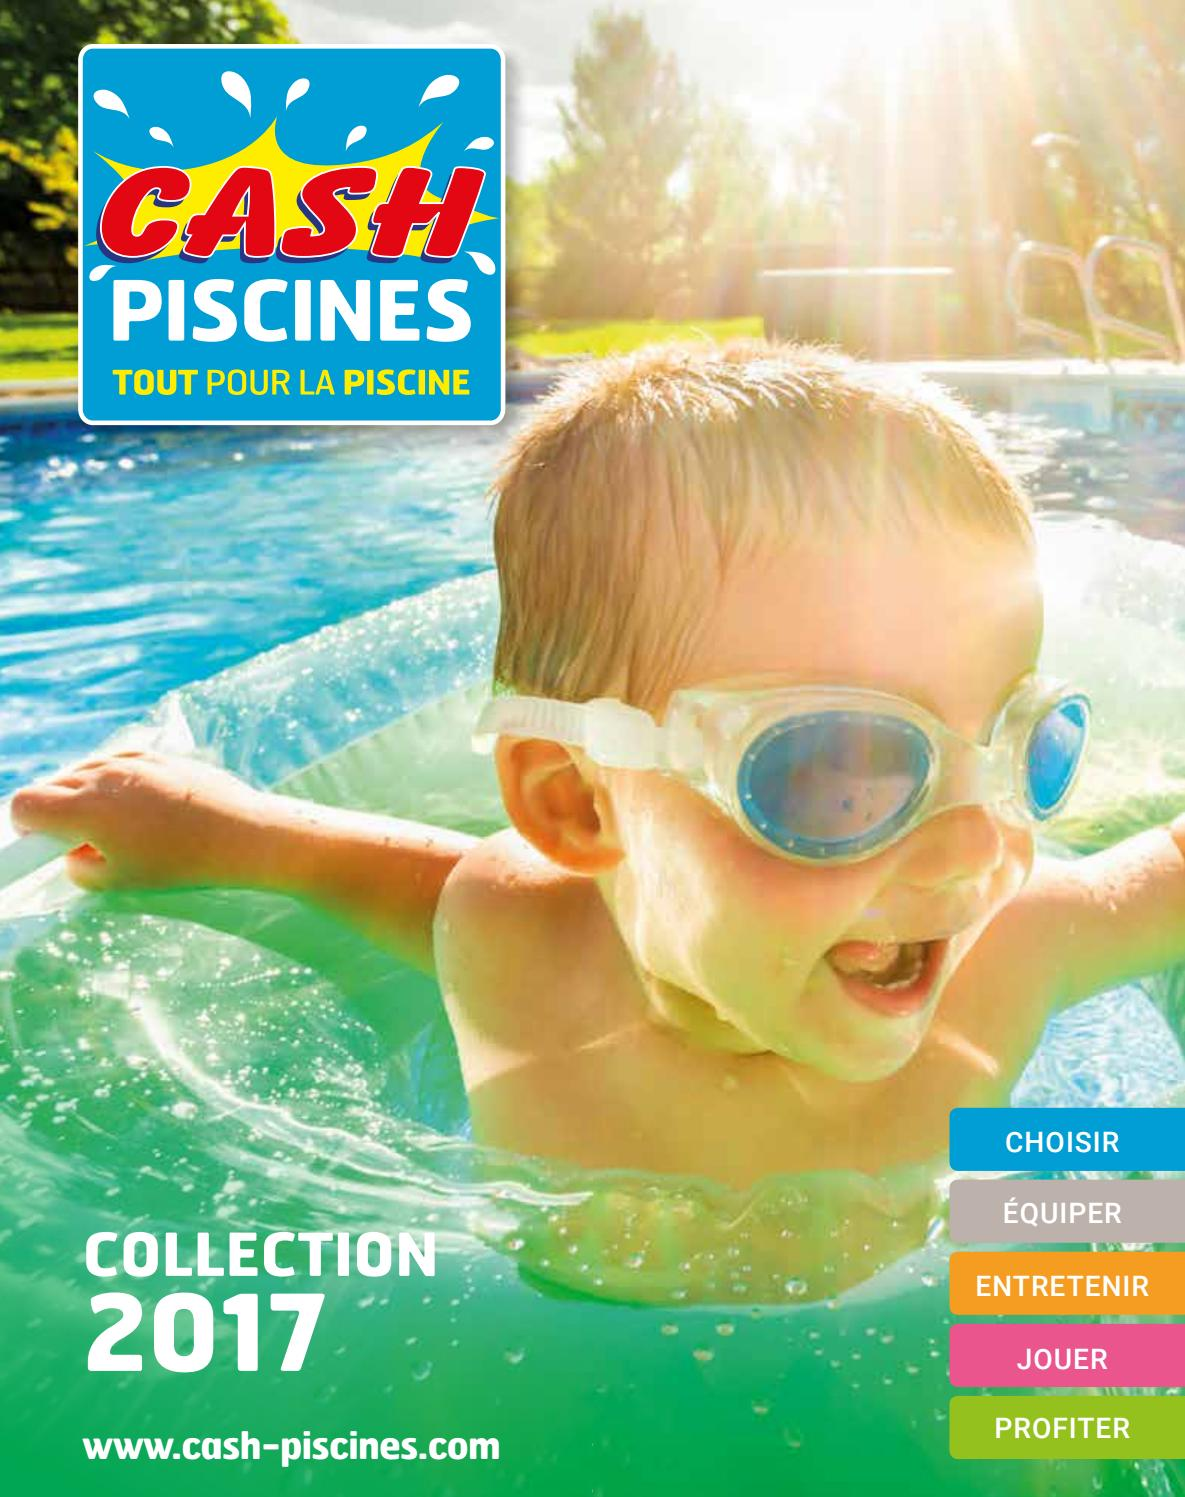 Catalogue cash piscine 2017 by octave octave issuu for Catalogue piscine